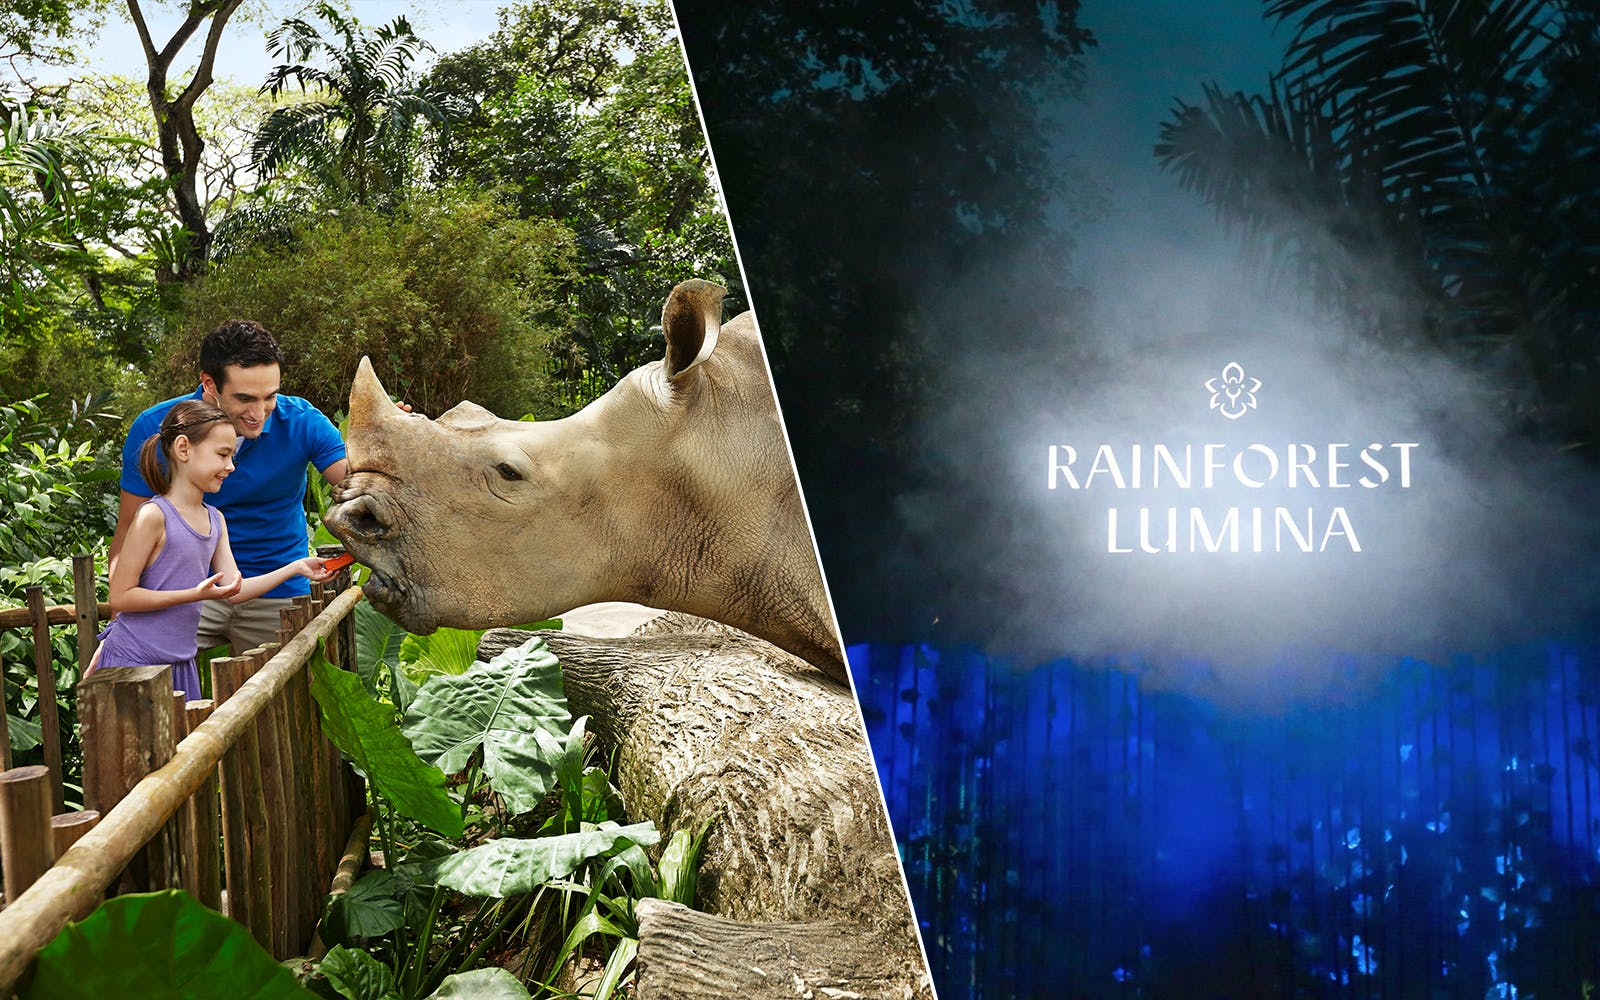 Super Saver Combo: Rainforest Lumina + Singapore Zoo